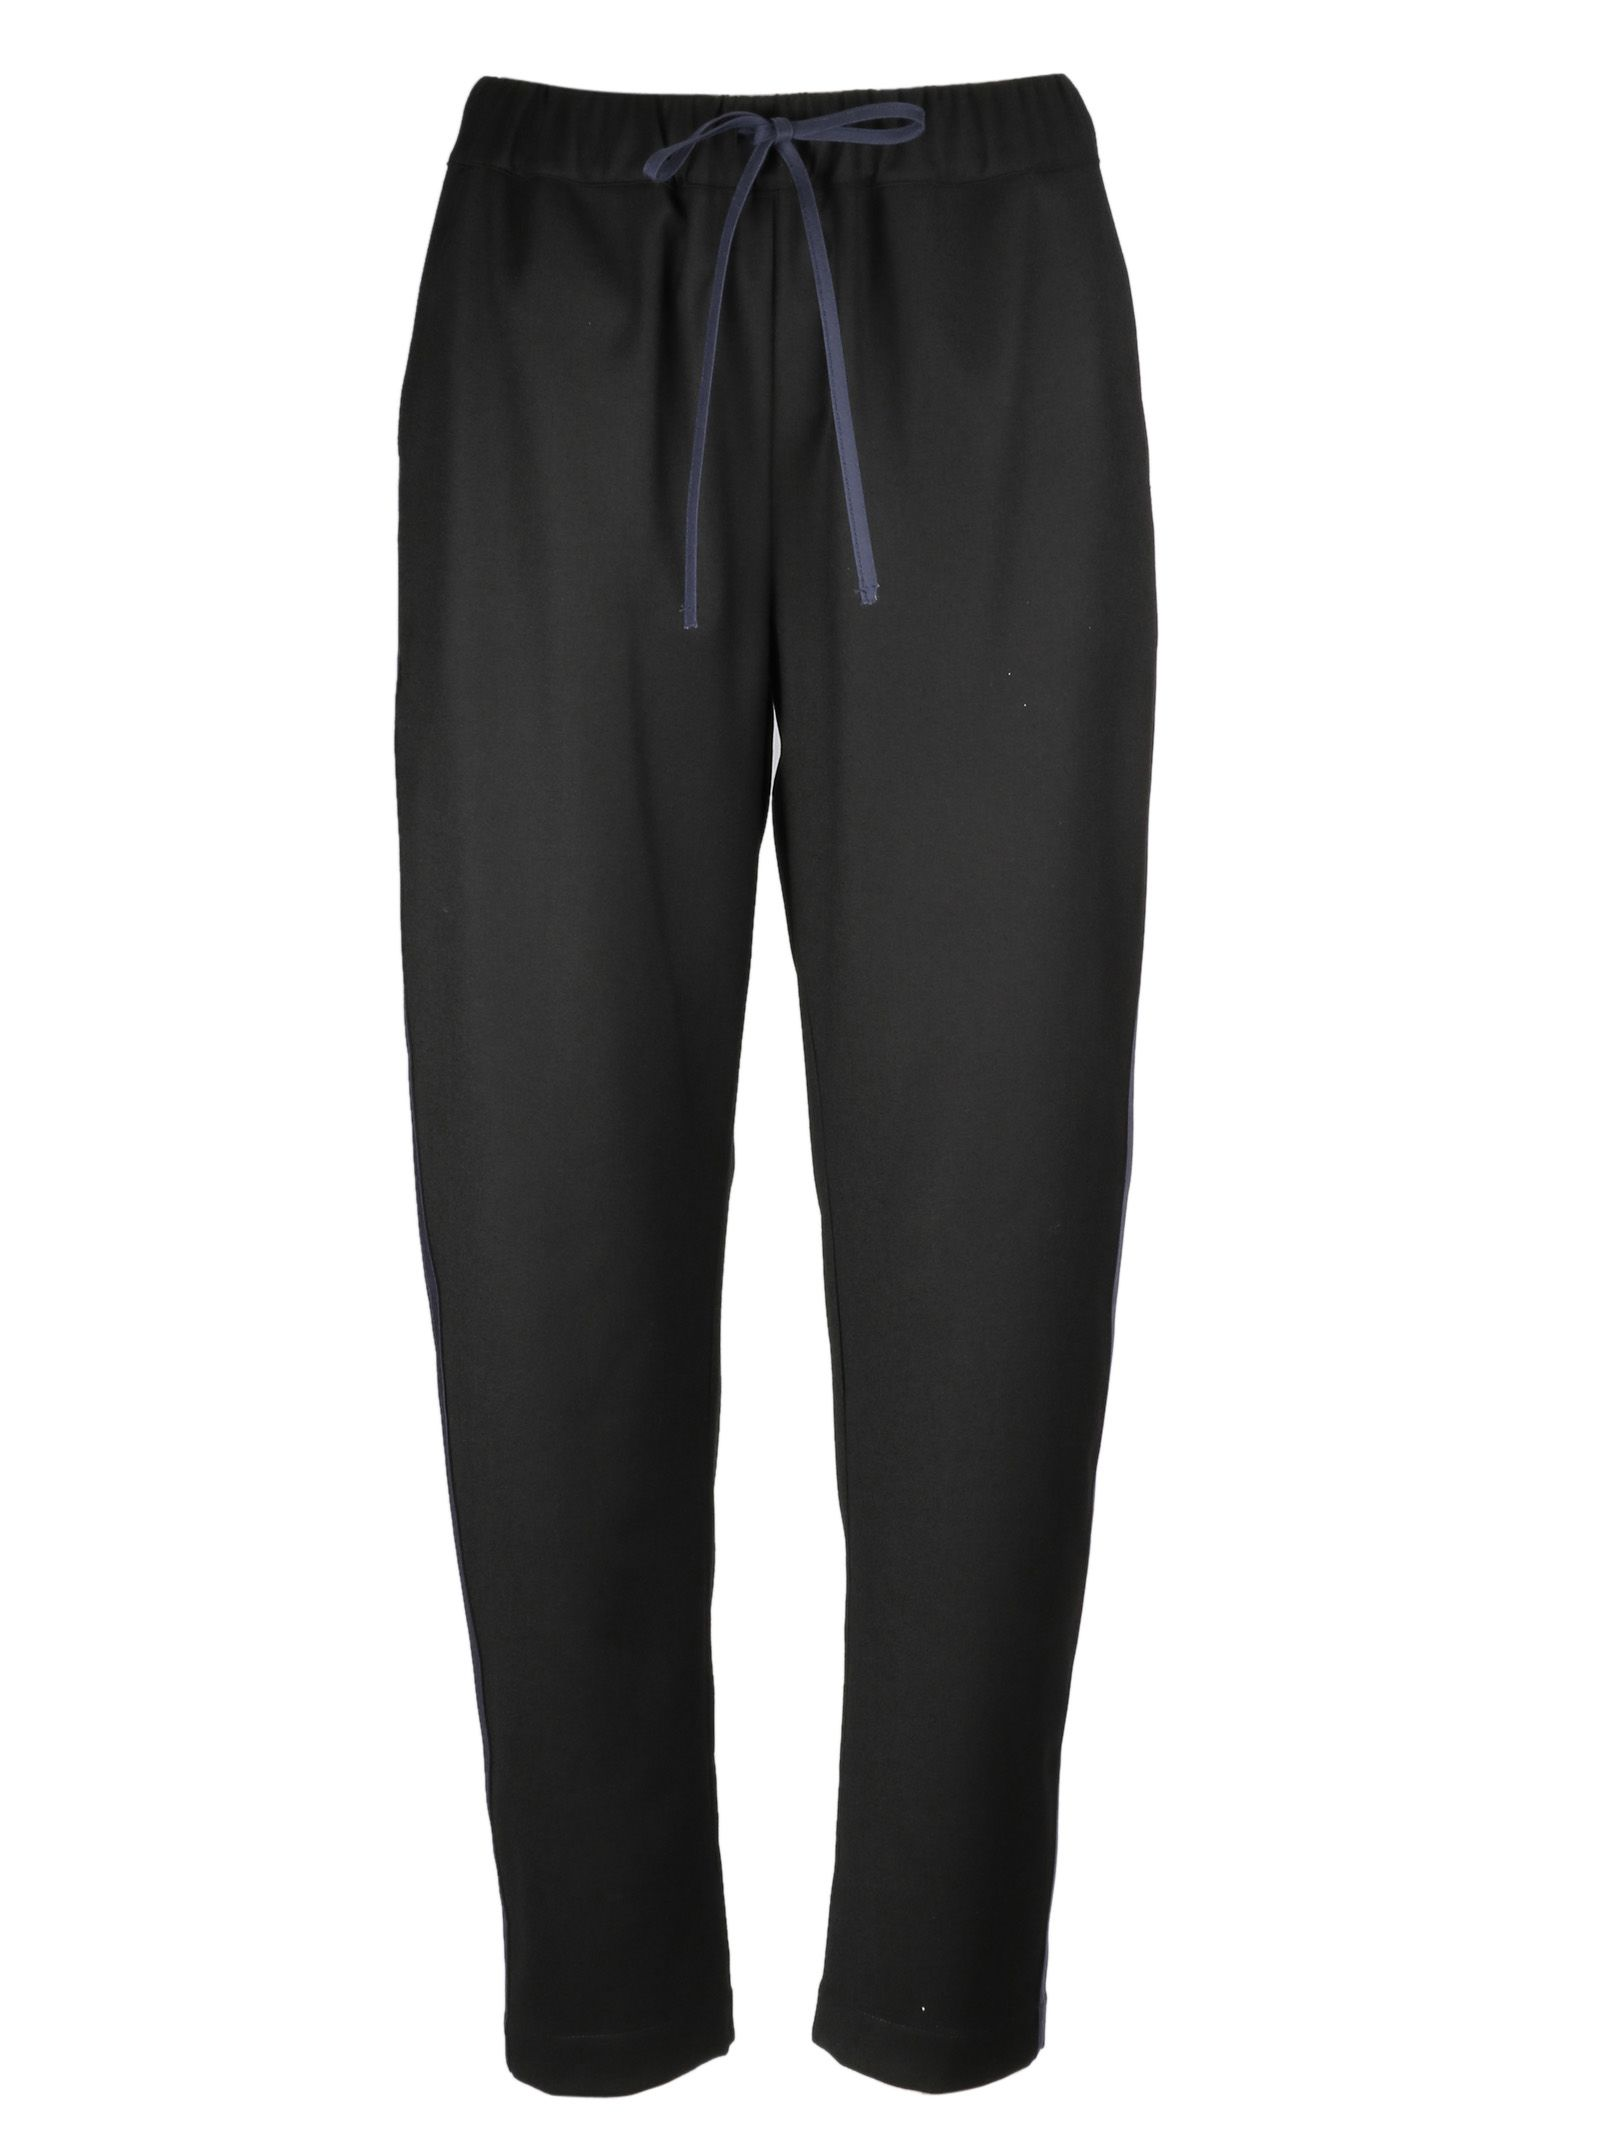 SEMICOUTURE DRAWSTRING TRACK PANTS from Italist.com